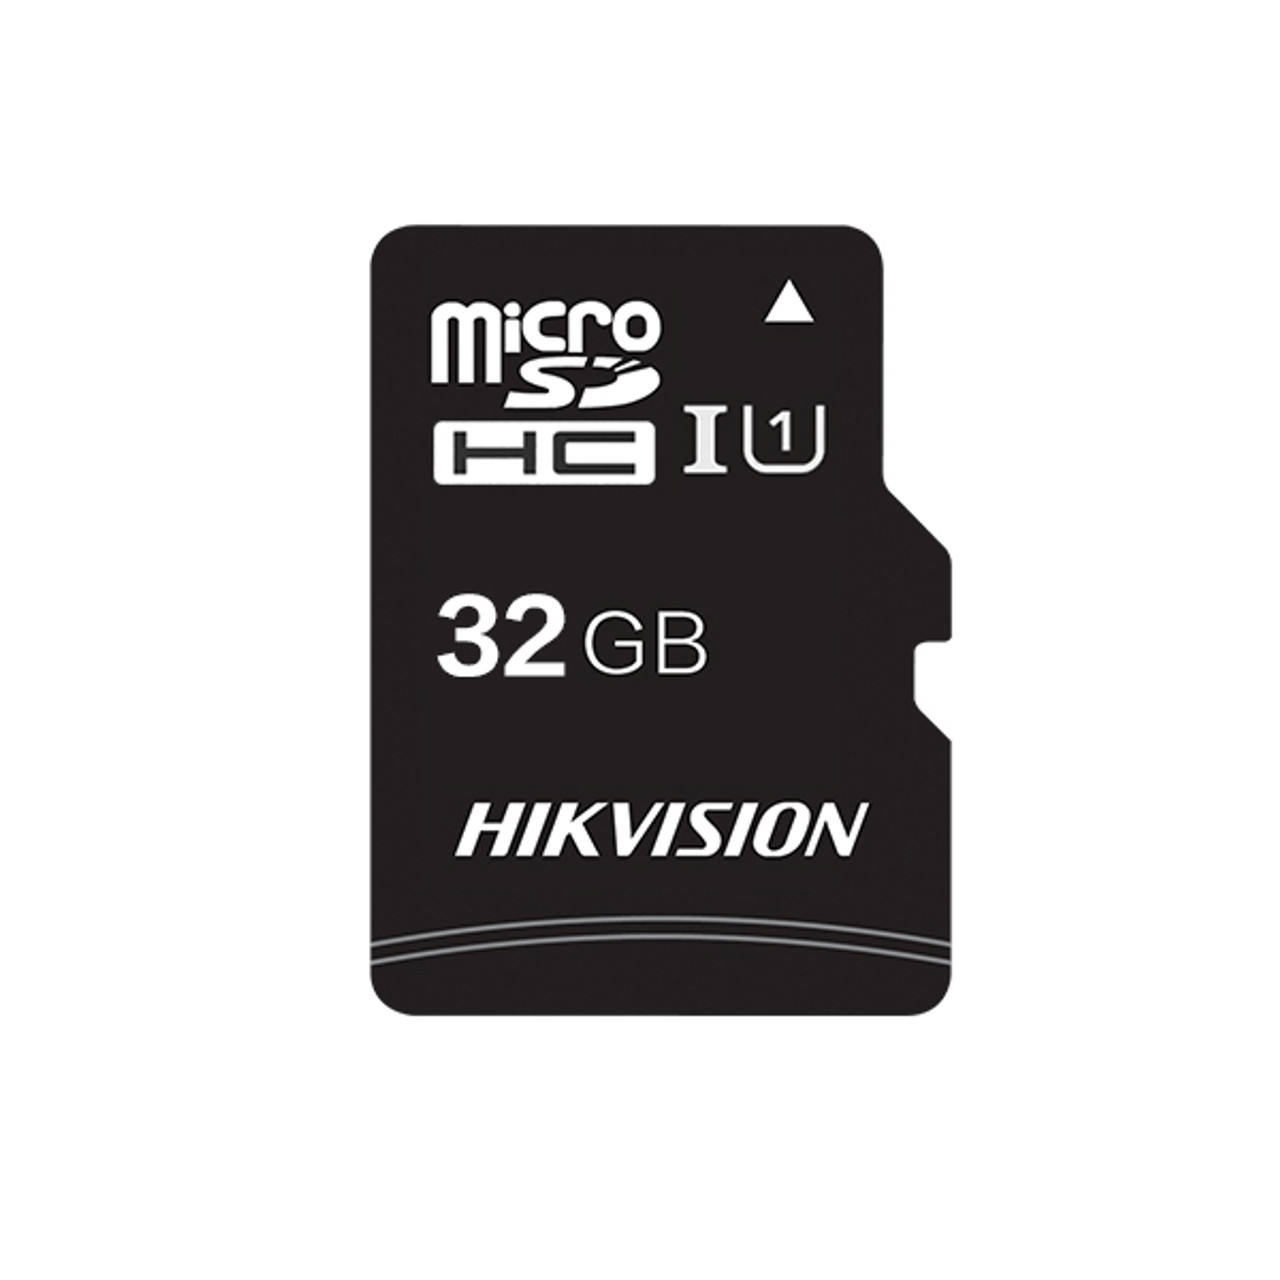 HIKVISION MicroSDHC™ 32GB High Performance